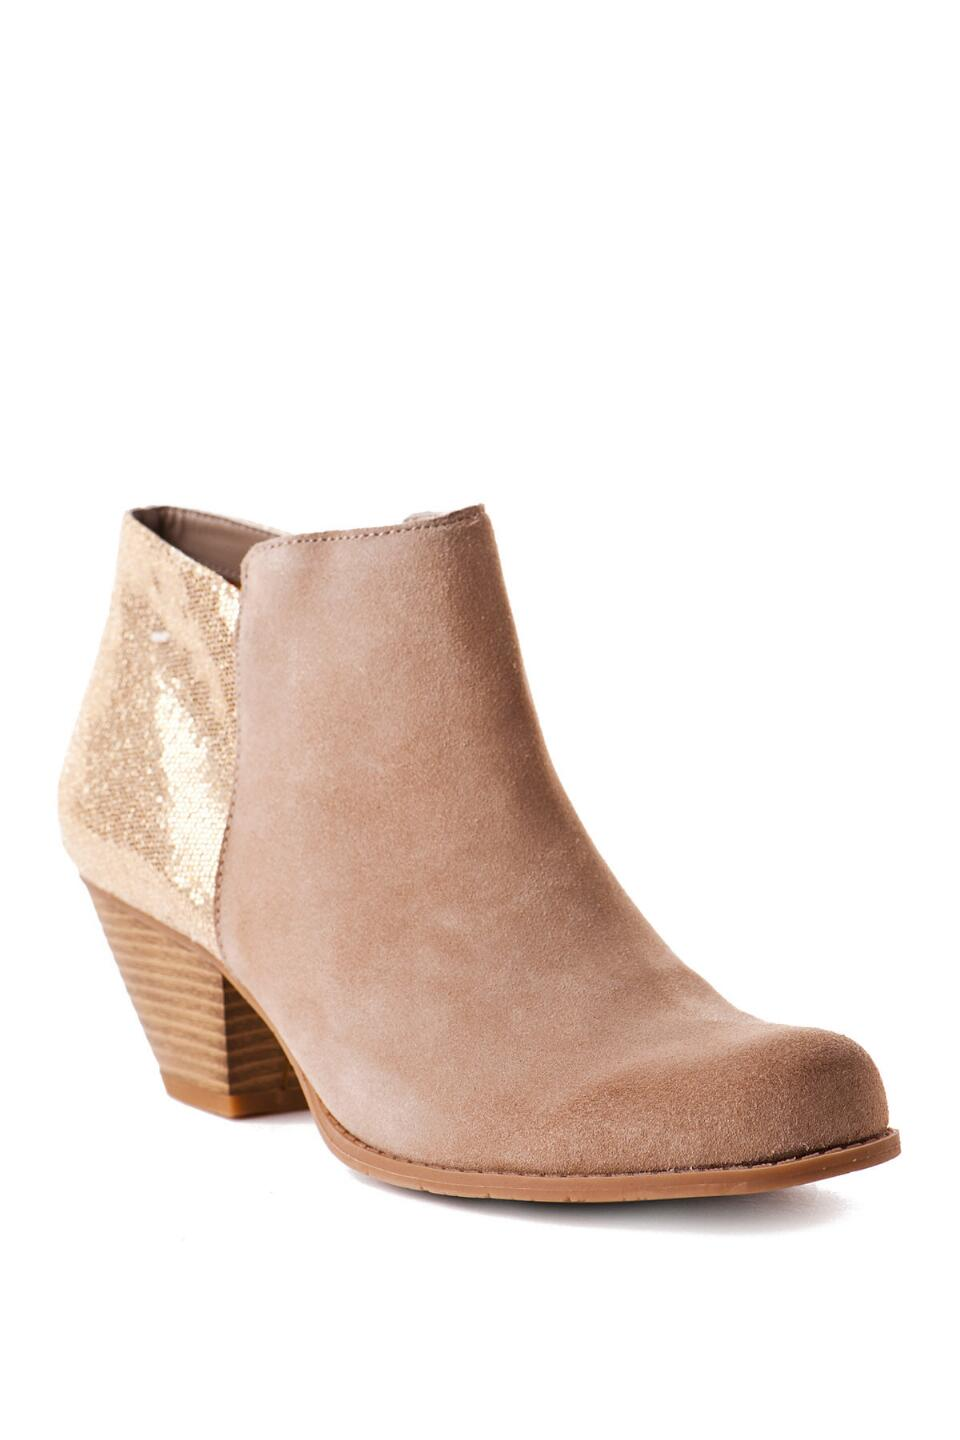 BC Footwear Shoes, Eager Beaver Metallic Bootie-  sand-cl